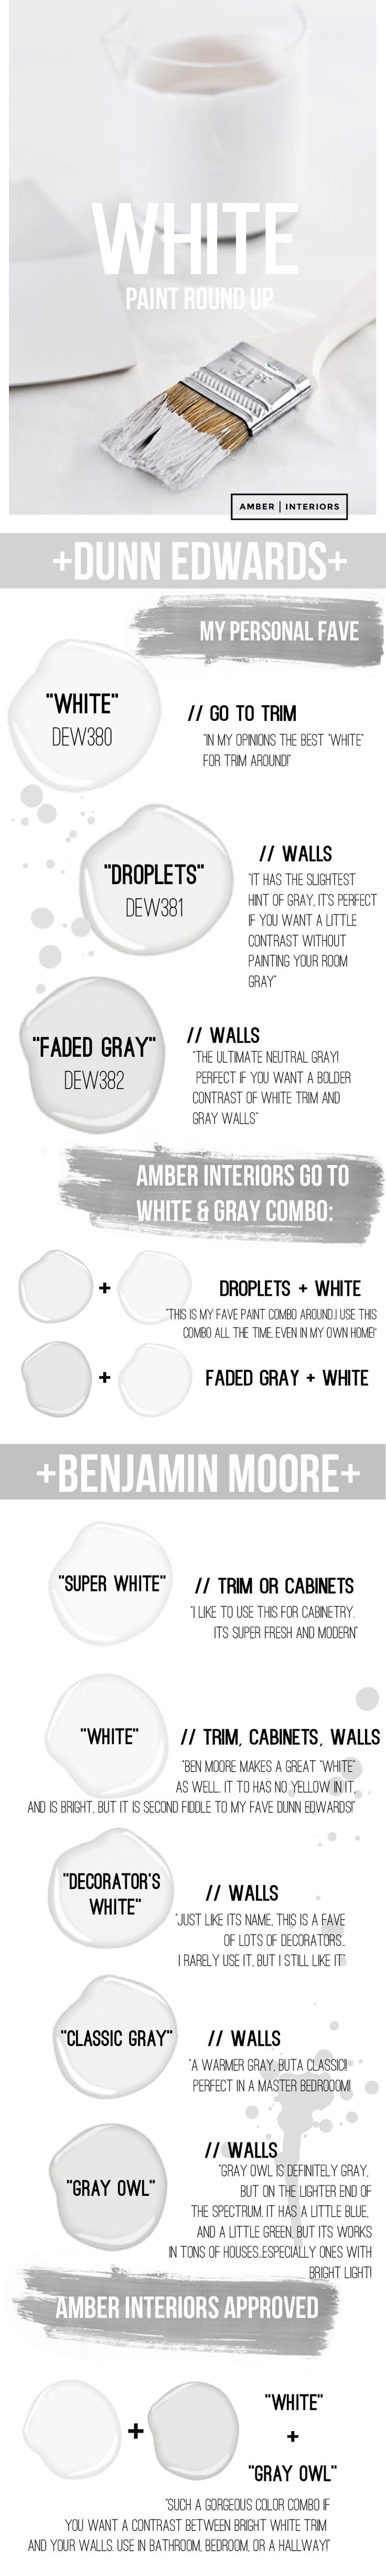 FYI: White Paint - Amber Interiors (check out DE white+droplets)